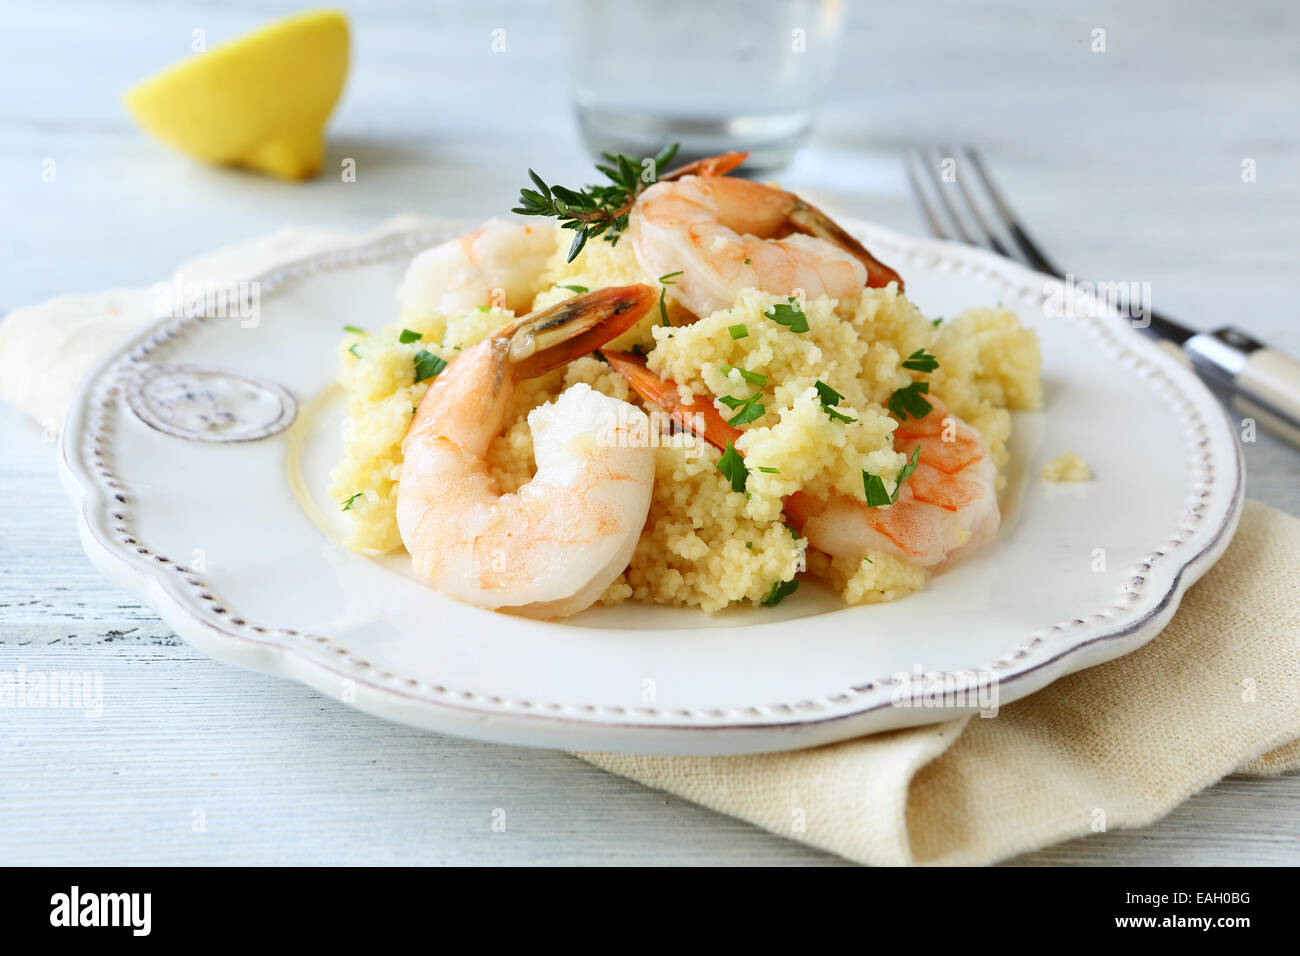 Nutritious couscous with shrimp. Seafood - Stock Image